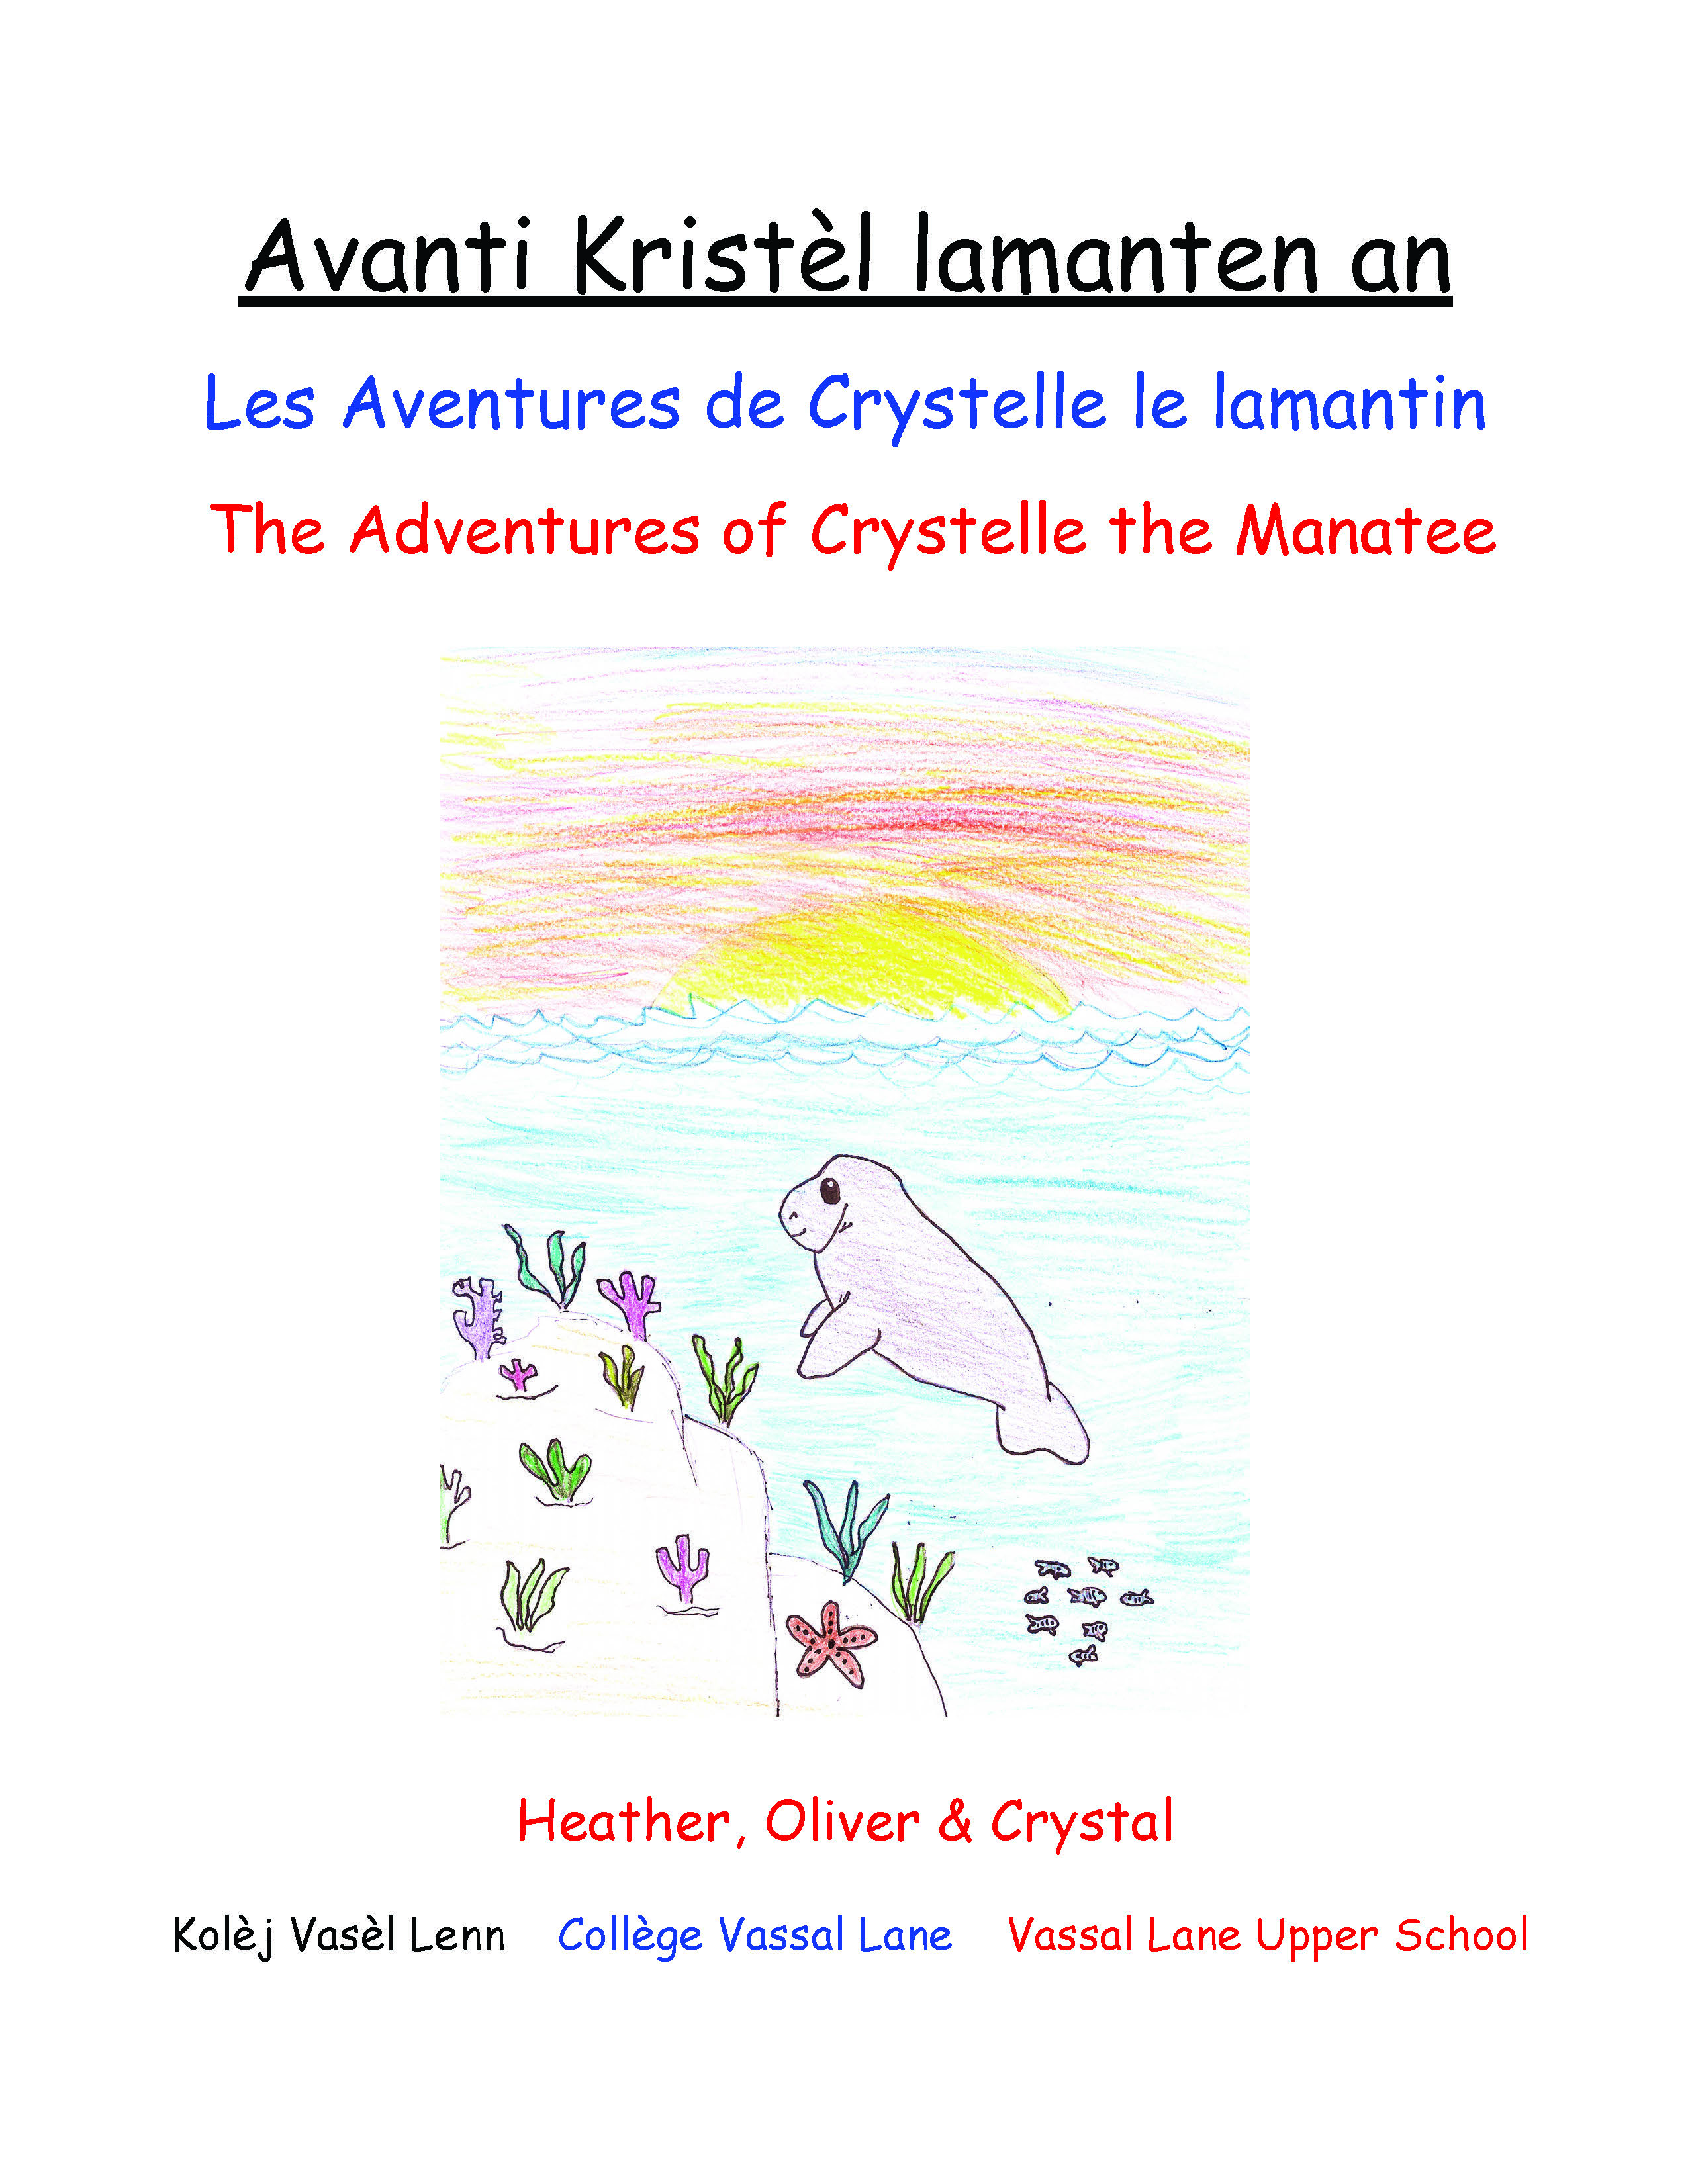 Avanti Kristèl, lamanten an / The Adventures of Crystelle, the Manatee